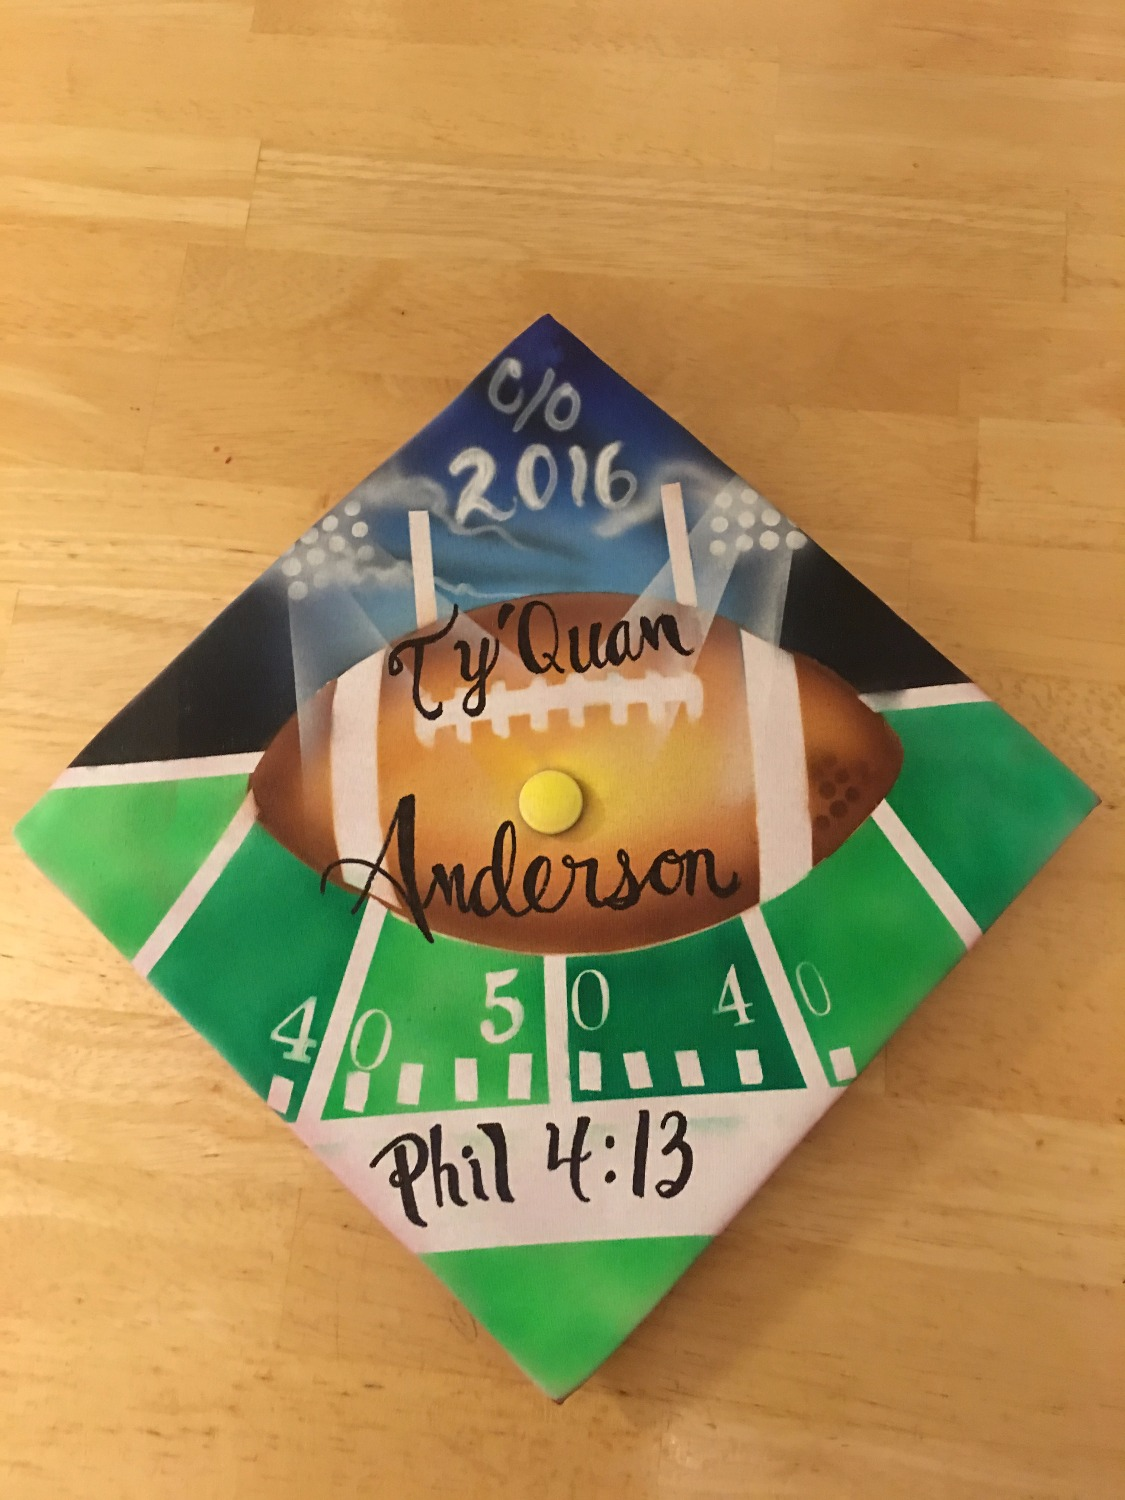 Chapel Hill and airbrush artist and Rock Hill Graduation Cap_edited.jpg